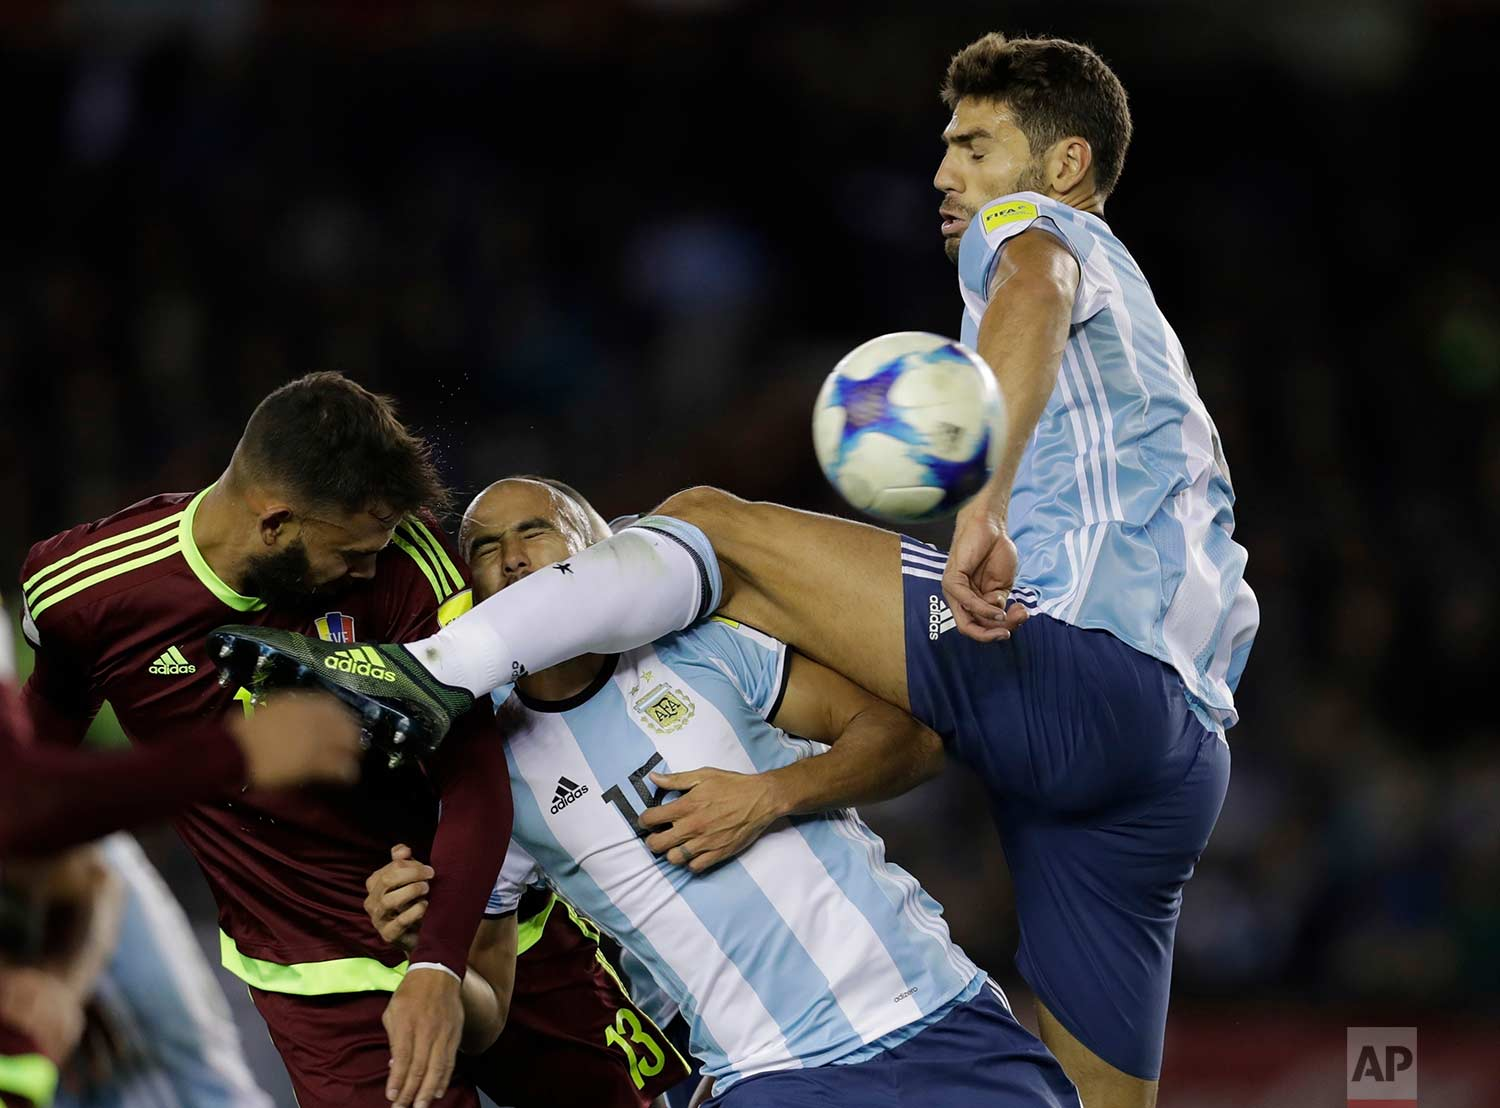 In this Tuesday, Sept. 5, 2017 photo, Venezuela's Jhon Chancellor, left, clears a ball beside Argentina's Guido Pizarro, center, and Federico Fazio during a 2018 World Cup qualifying soccer match in Buenos Aires, Argentina. (AP Photo/Victor R. Caivano)